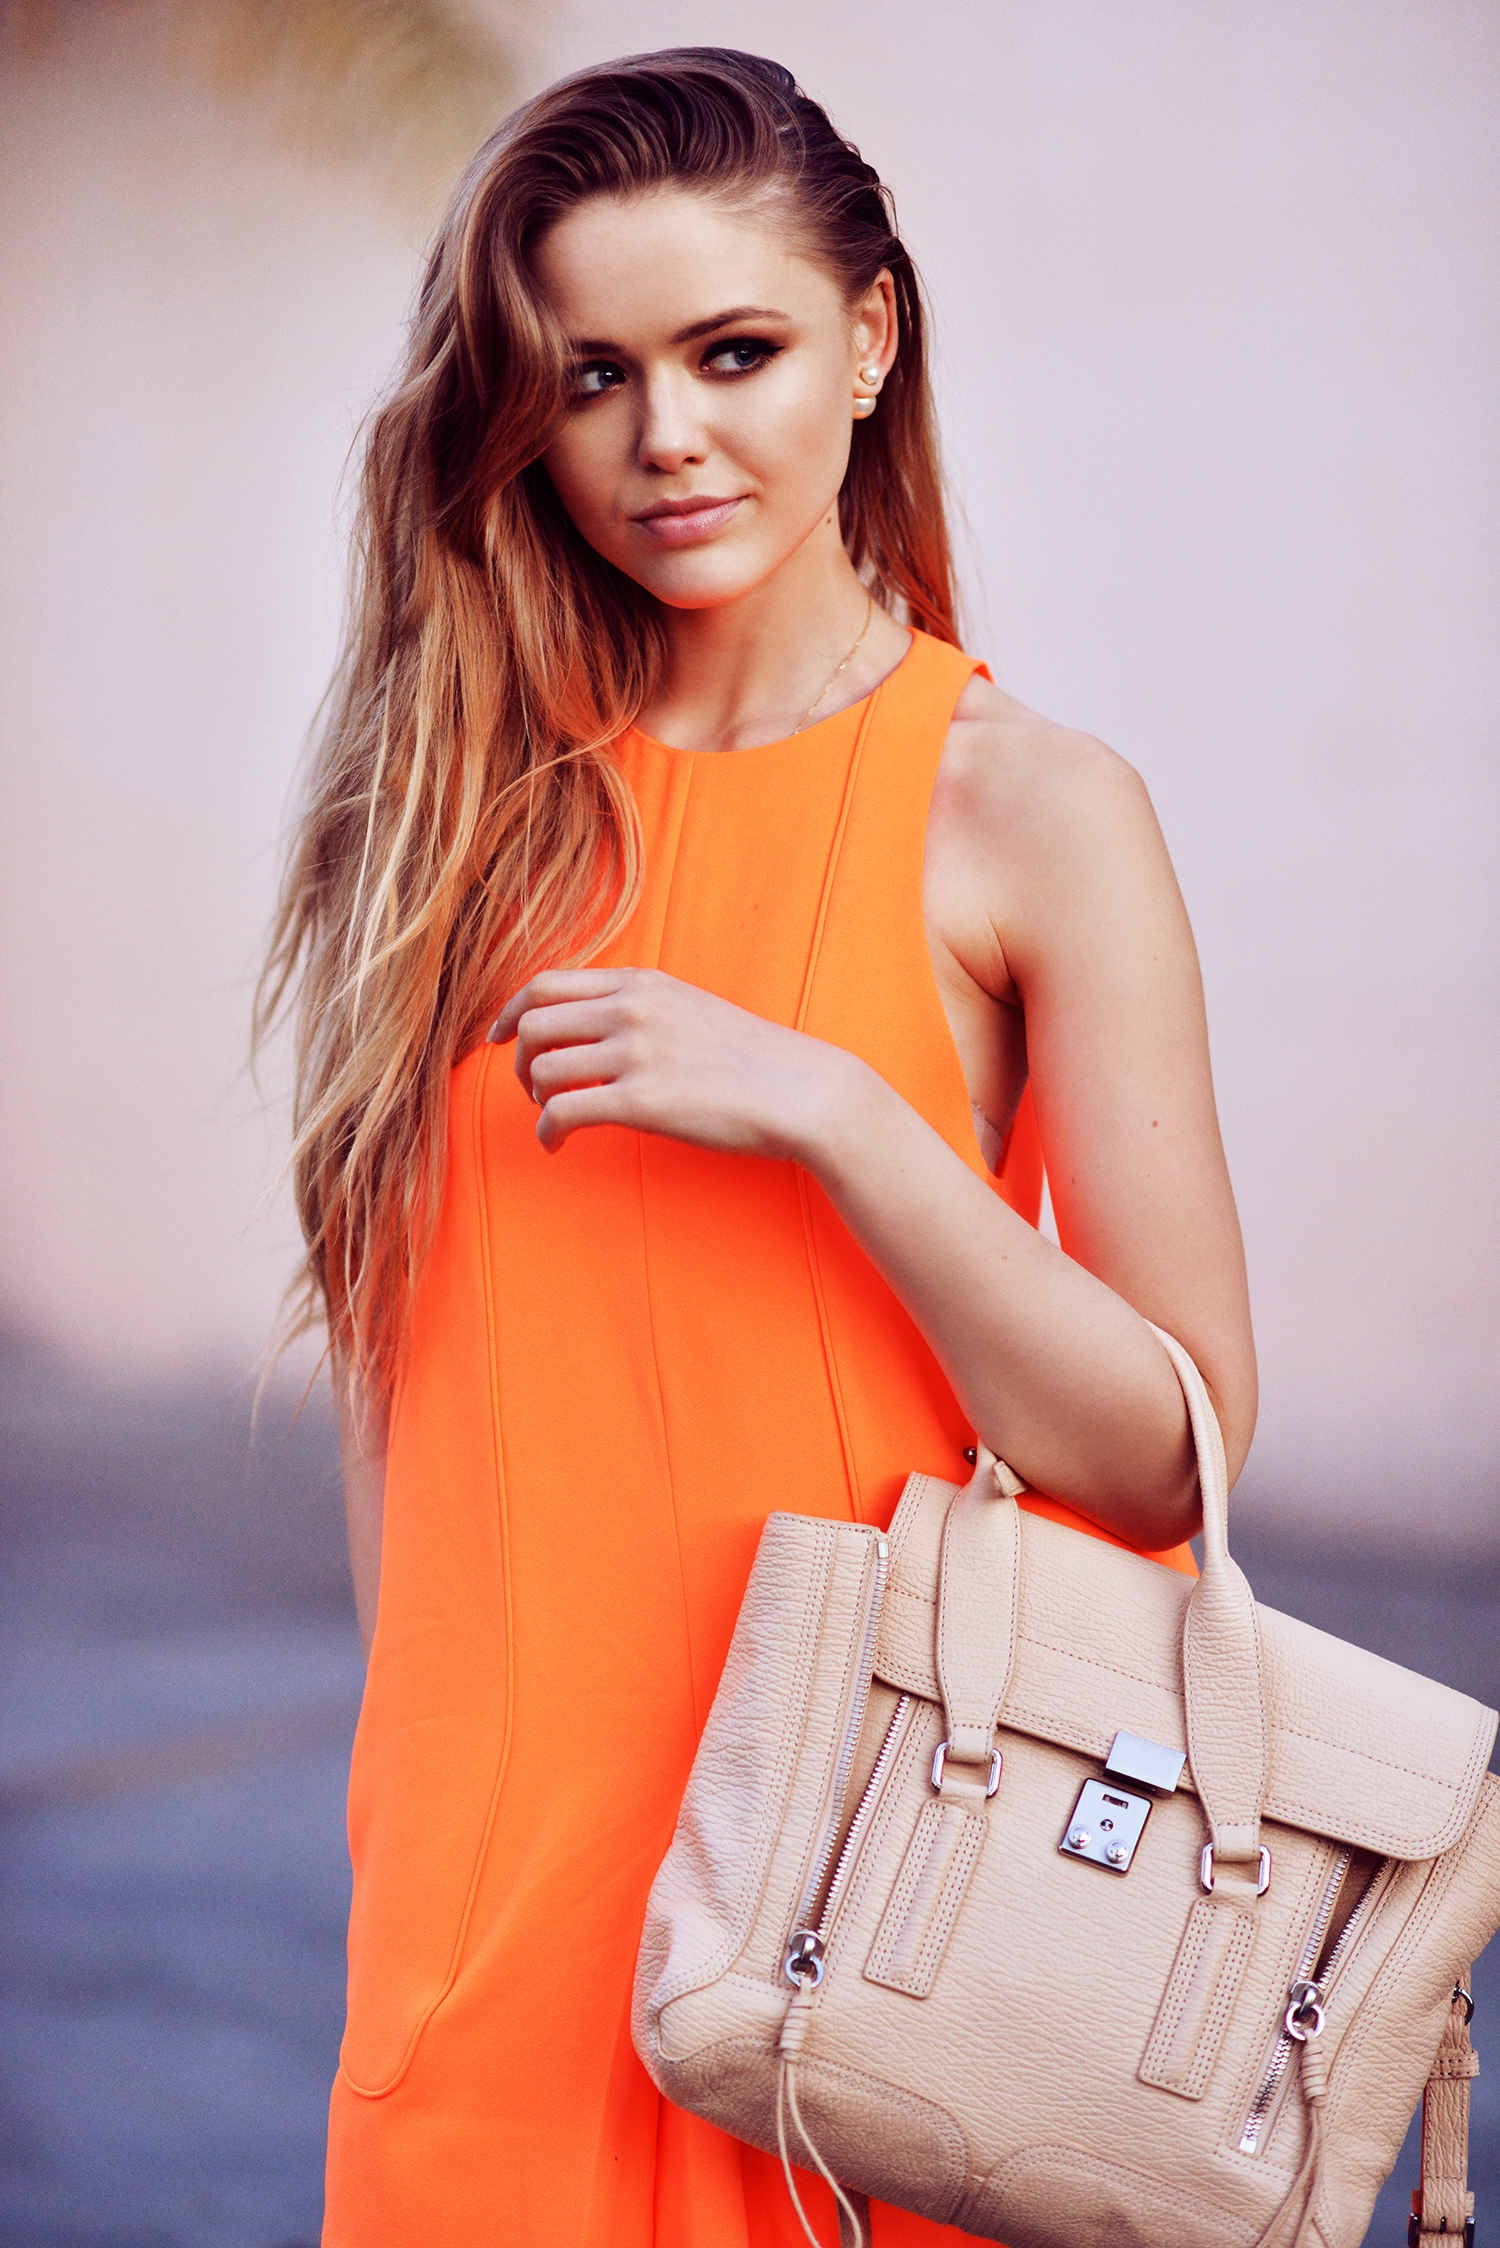 Kristina Bazan is wearing a Neon dress from Finders Keepers, and the bag is from Philip Lim